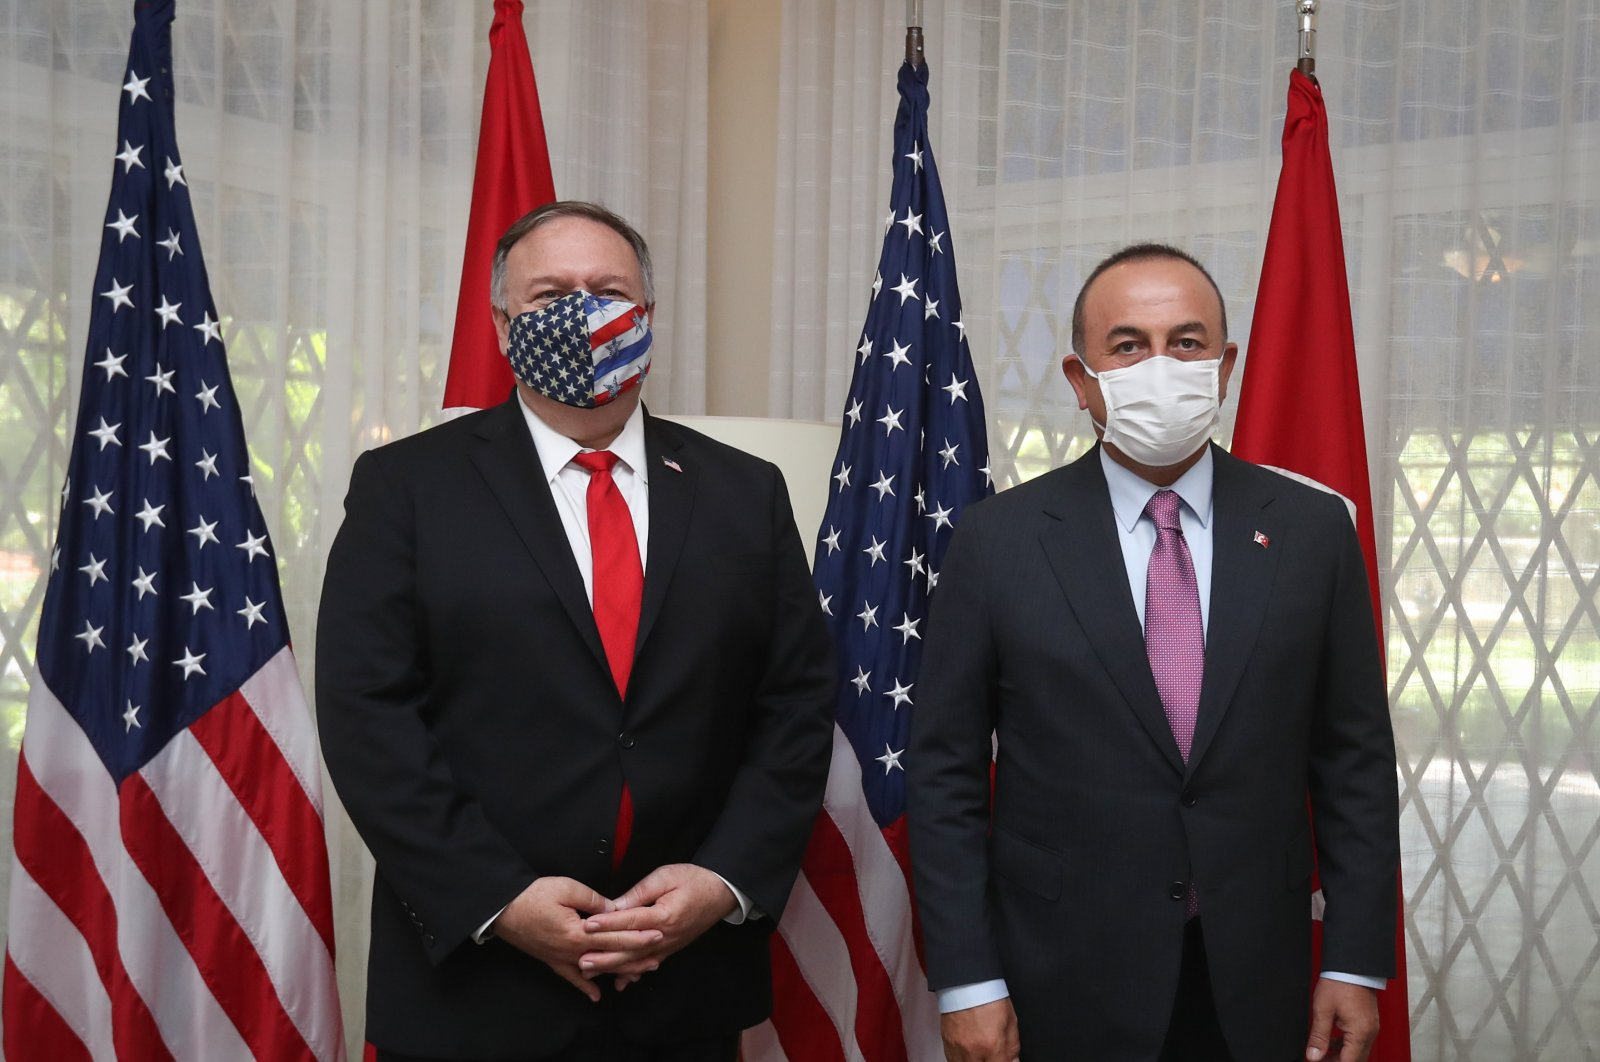 U.S. Secretary of State Mike Pompeo (L) stands beside Turkish Foreign Minister Mevlüt Çavuşoğlu during an official visit to Santo Domingo, the Dominican Republic, Aug. 16, 2020. (AA Photo)